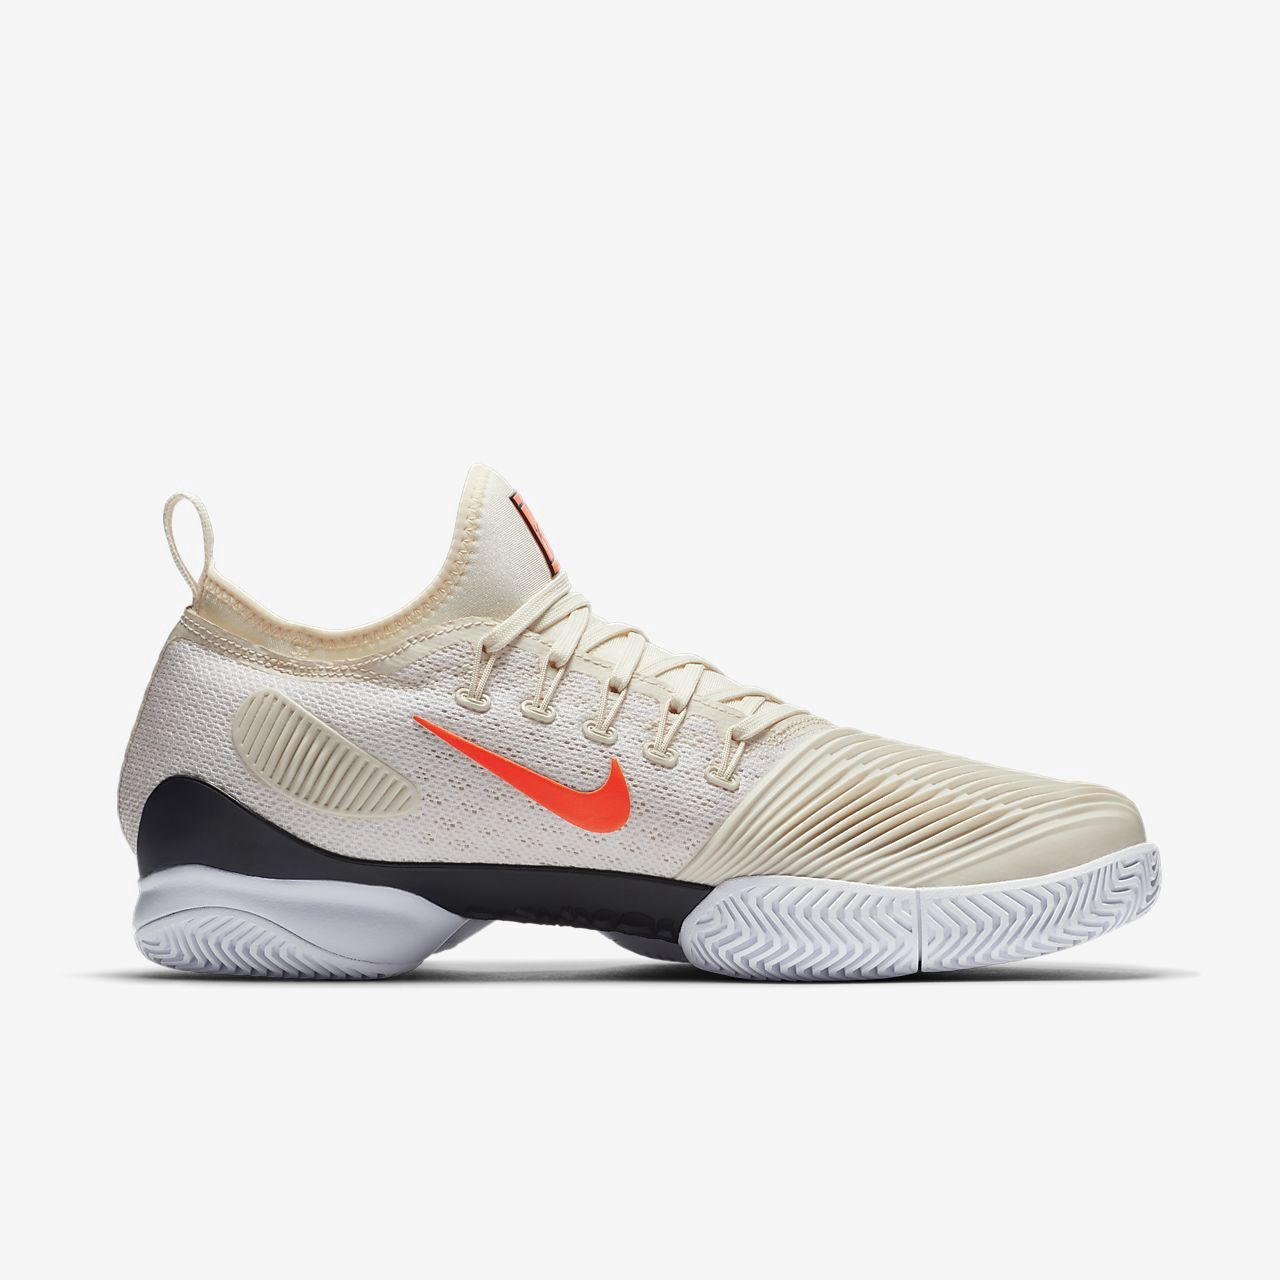 new style 96b91 a620e Nike Court Air Zoom Ultra Rct Men s Tennis Shoe - 12.5